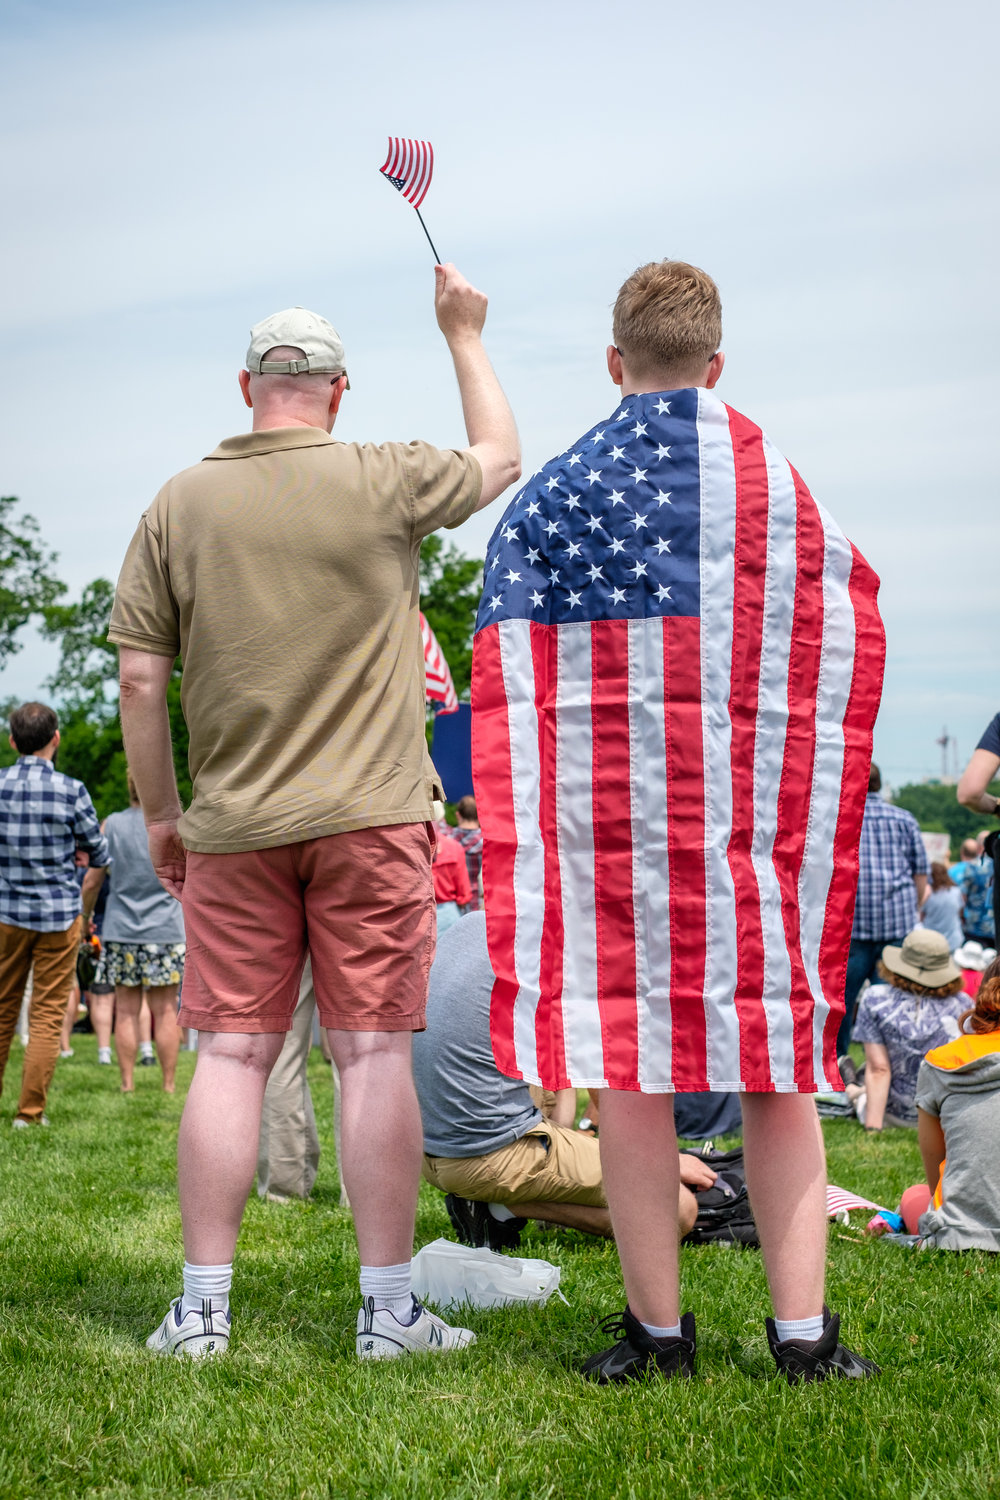 "Joe Bates, left, and his son Matthew from Fairfax, VA are seen from behind at the March for Truth DC rally held on the National Mall on Saturday, June 3, 2017 in Washington, DC. ""I'm here because Trump is the most despicable president we've ever had in the history of the United States. And I think we the people need to show that we're not going to stand for it,"" offered Joe."